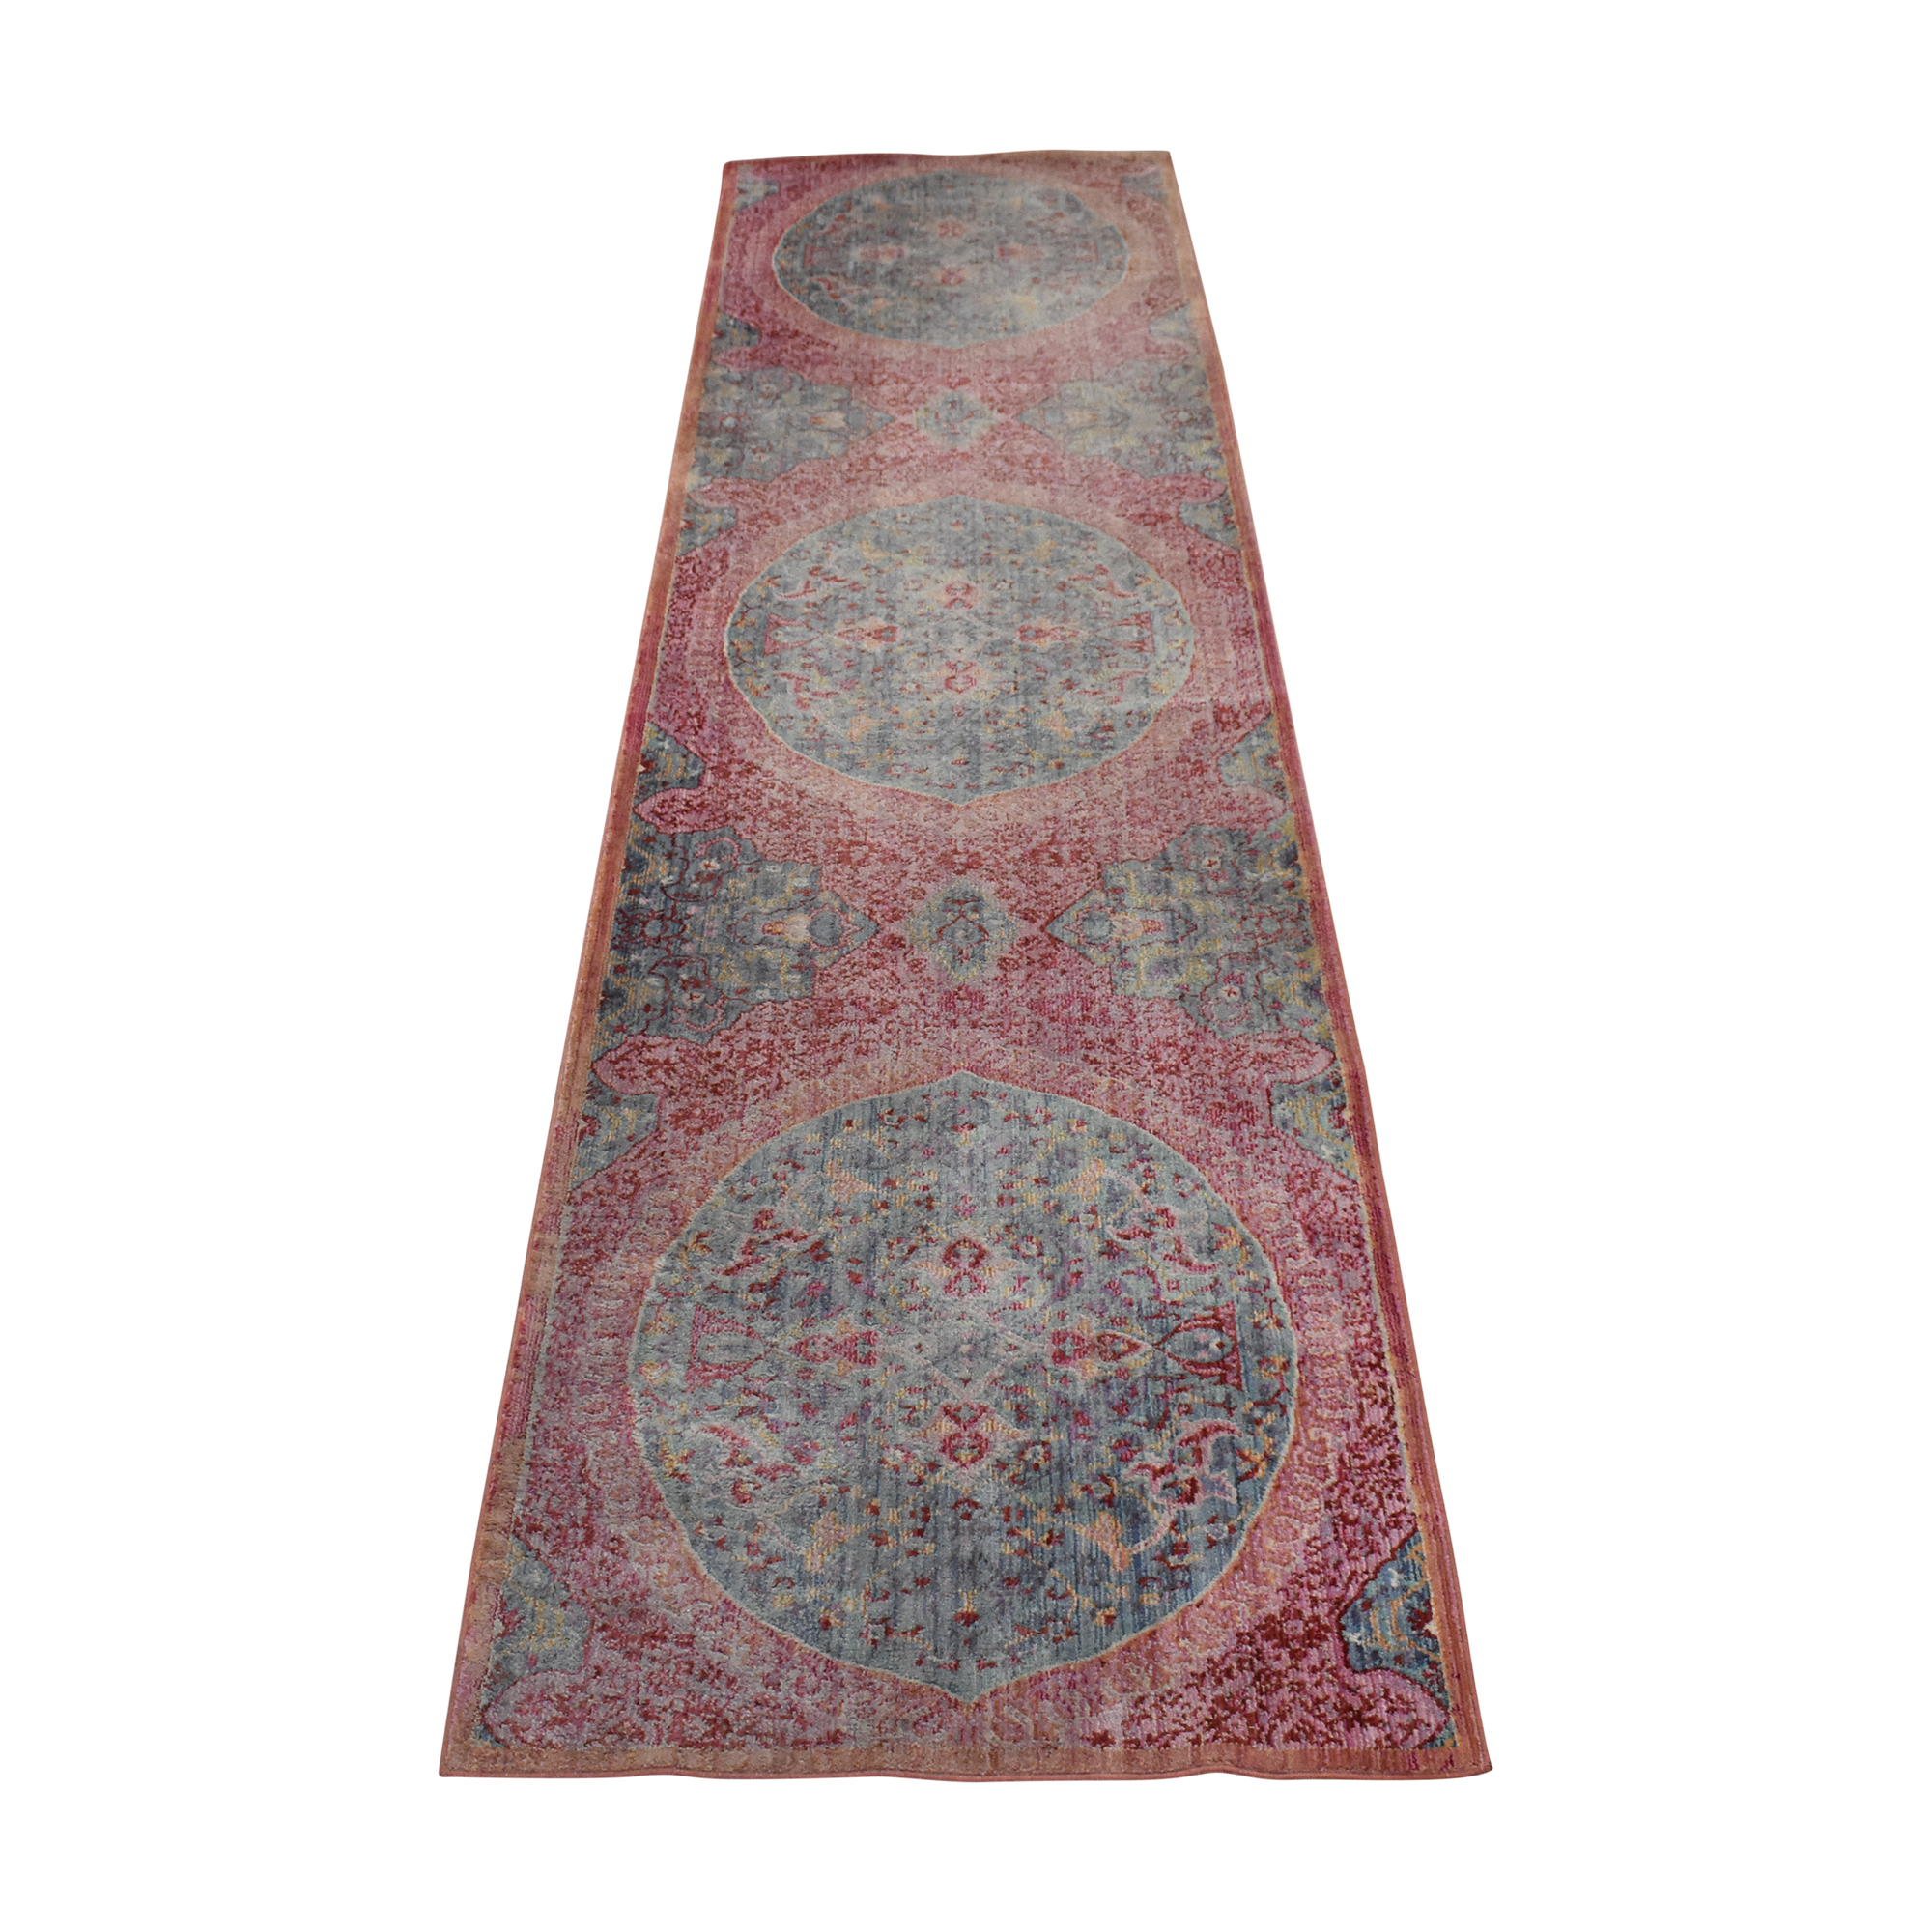 Safavieh Sutton Collection Runner Rug / Decor